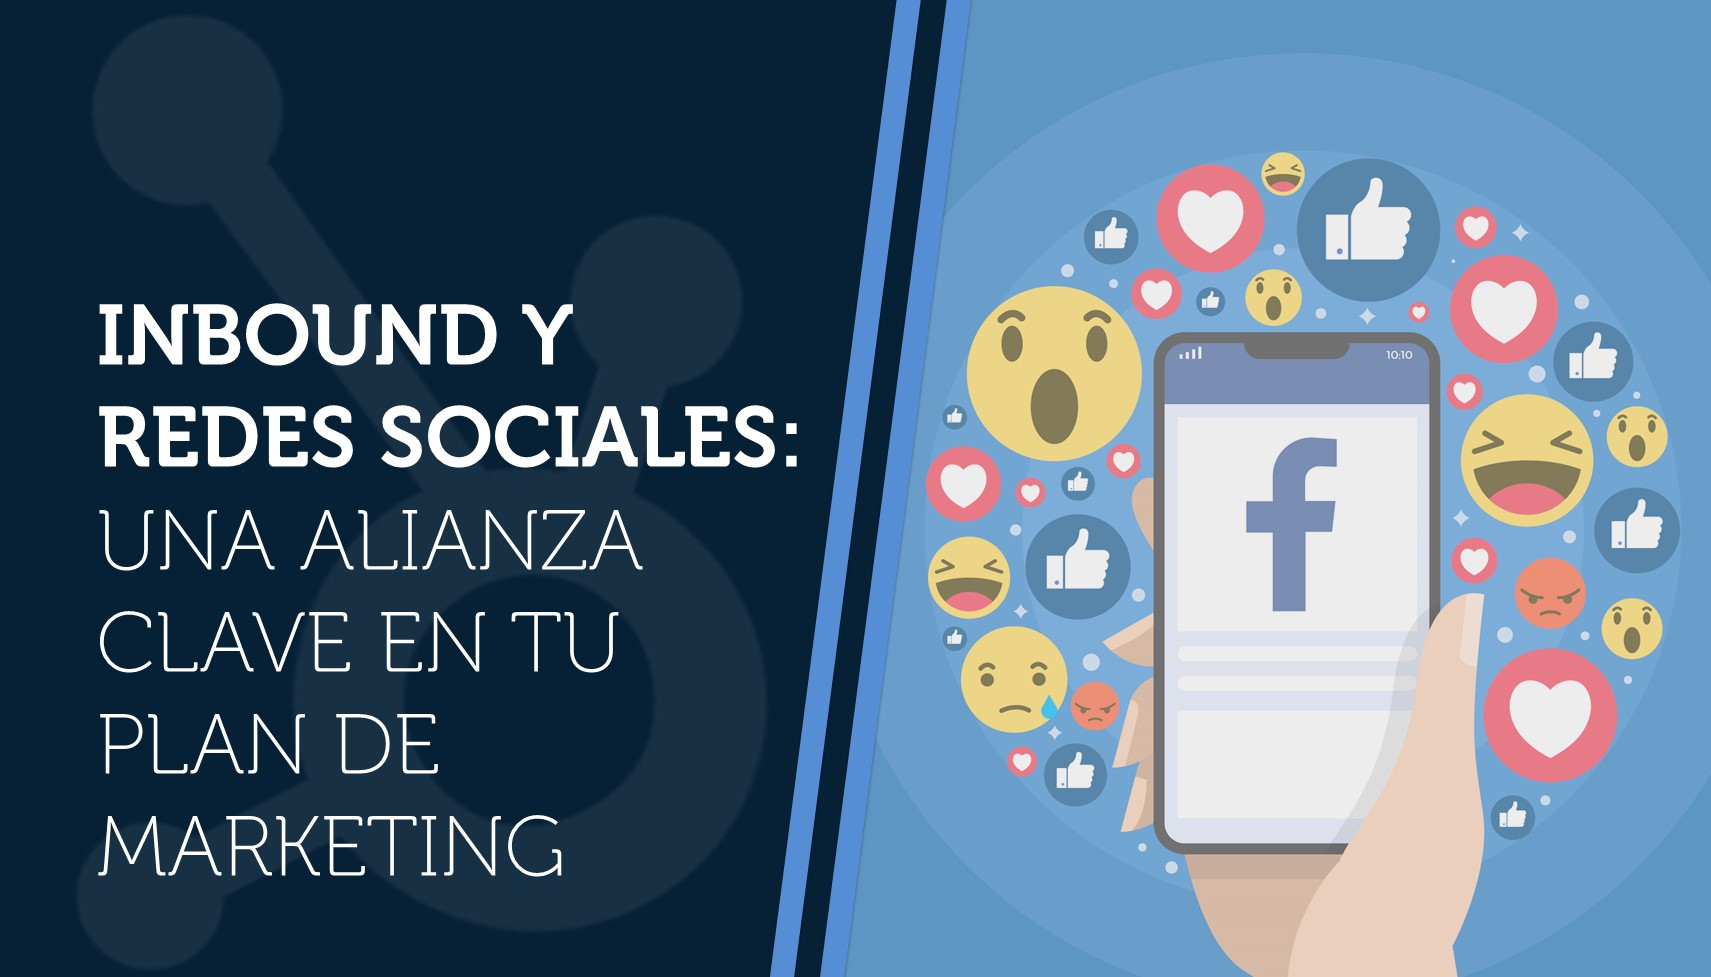 Inbound y redes sociales: una alianza clave en tu plan de marketing